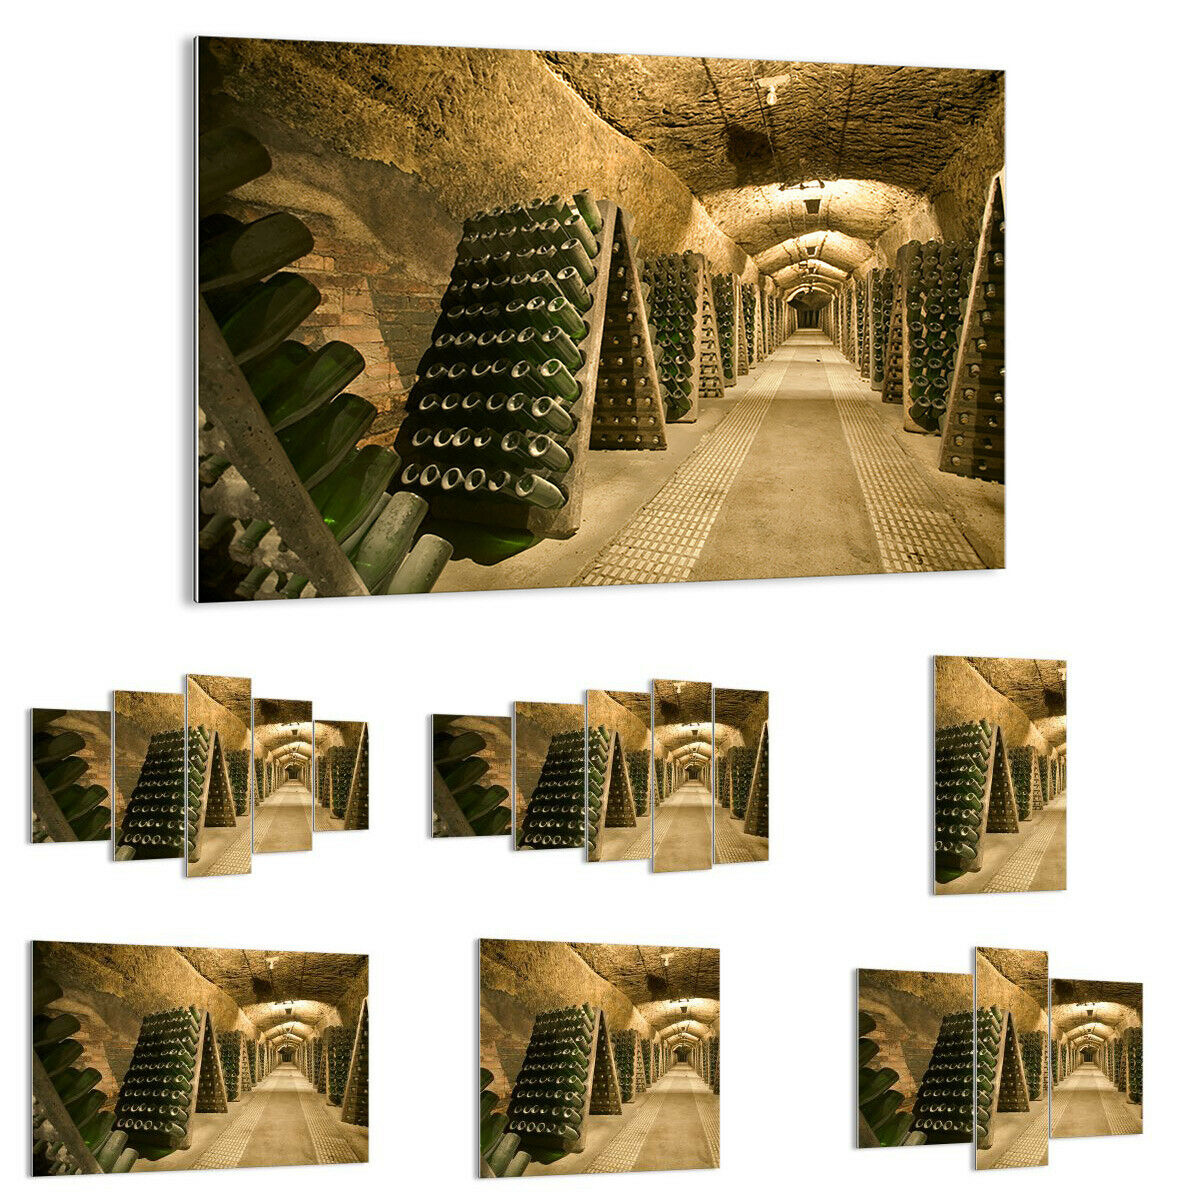 GLASS PRINTS Image Wall Art Wine cellar bottles basement 0366 UK